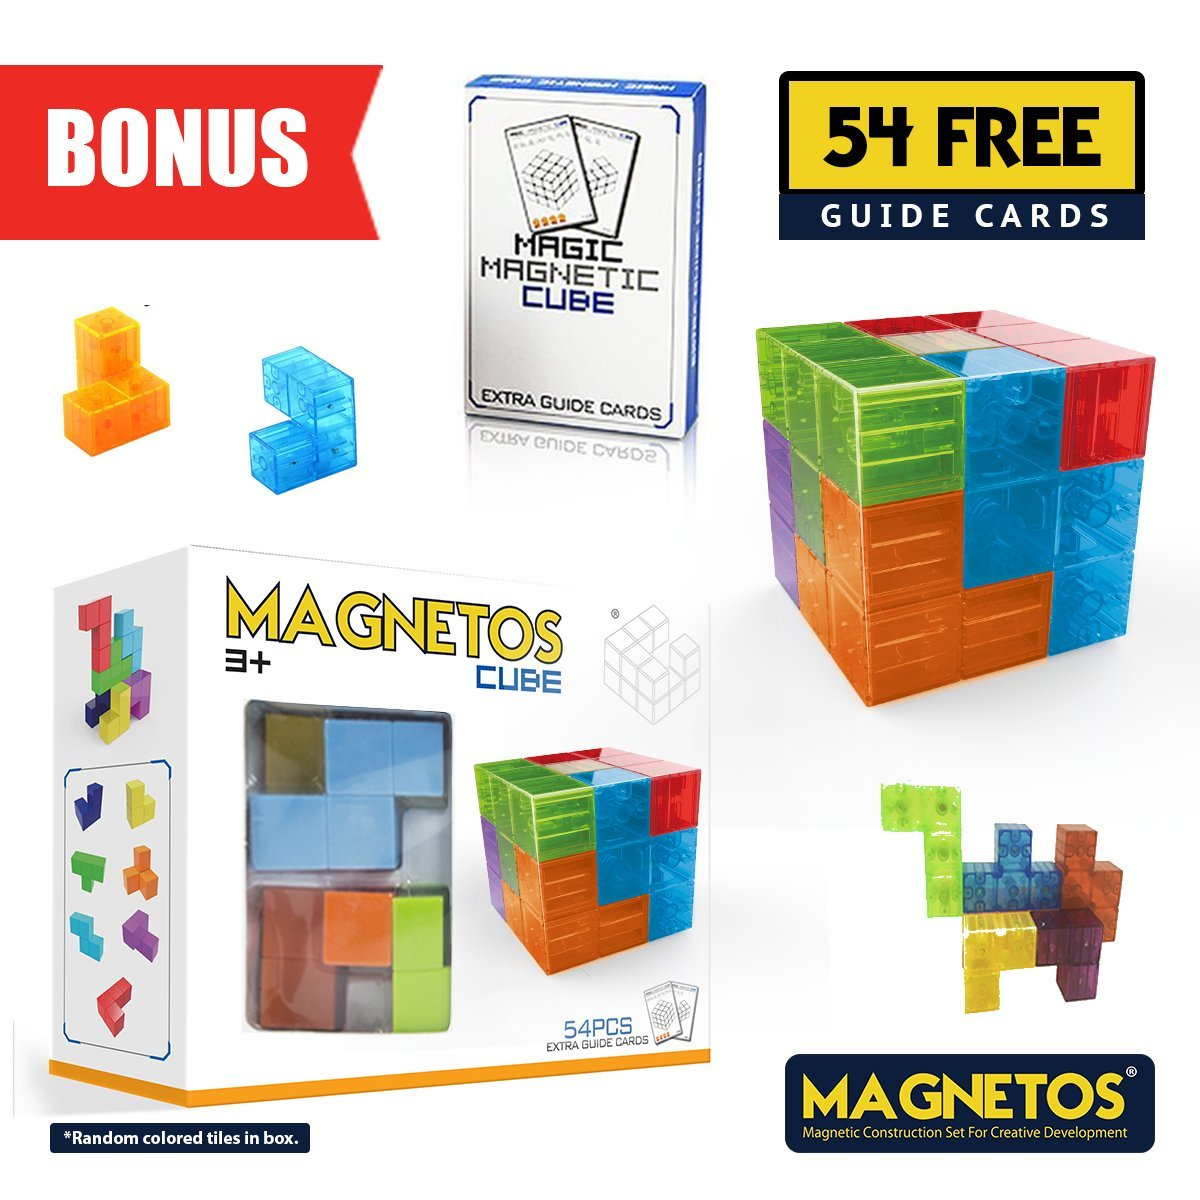 MAGNETOS Magnetic CUBE, FREE 54 Idea Cards, Educational, Construction Game, Challenging Puzzle for Boys, Girls and Adults of all Ages, Preschool STEM Toy for Childrens, Fidget